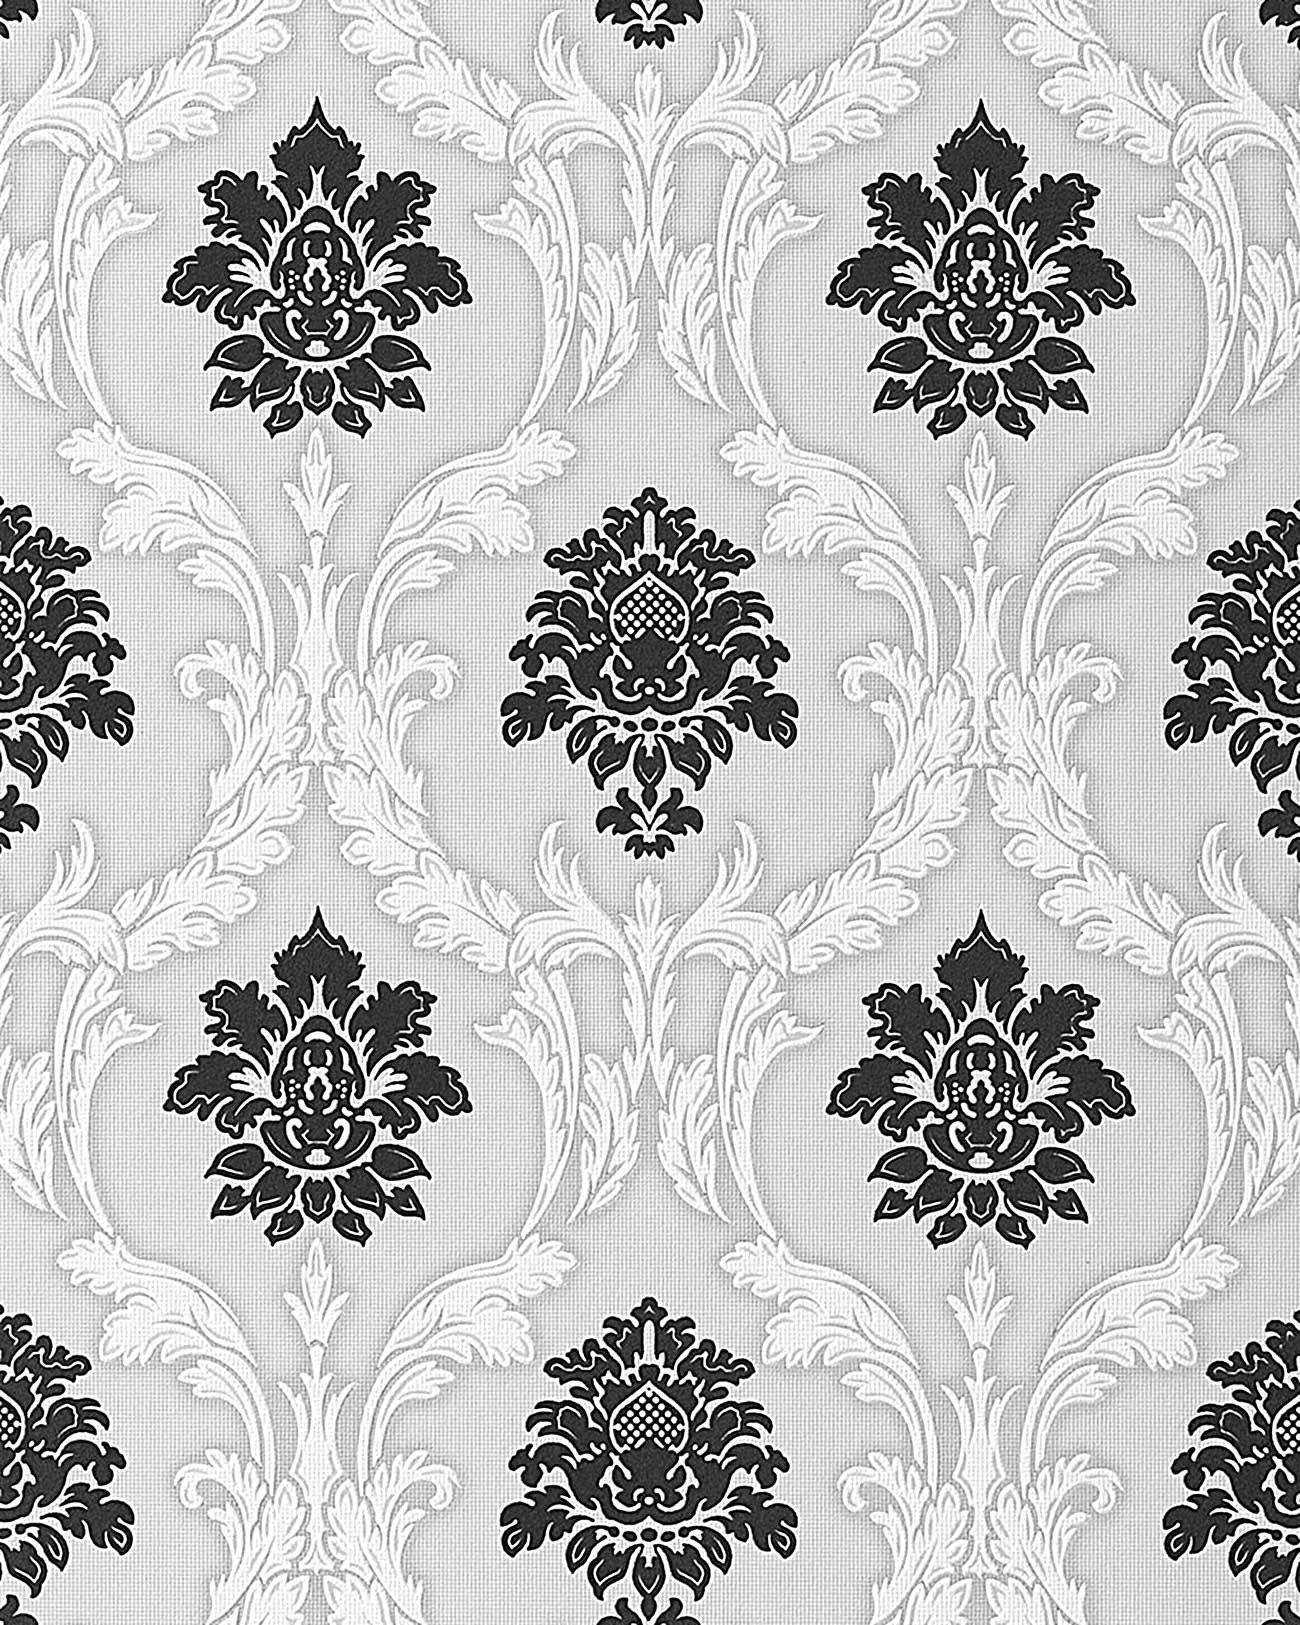 Wallpapers Wallcovering Wall Textured Baroque EDEM Damask - Wallpaper for walls black and white